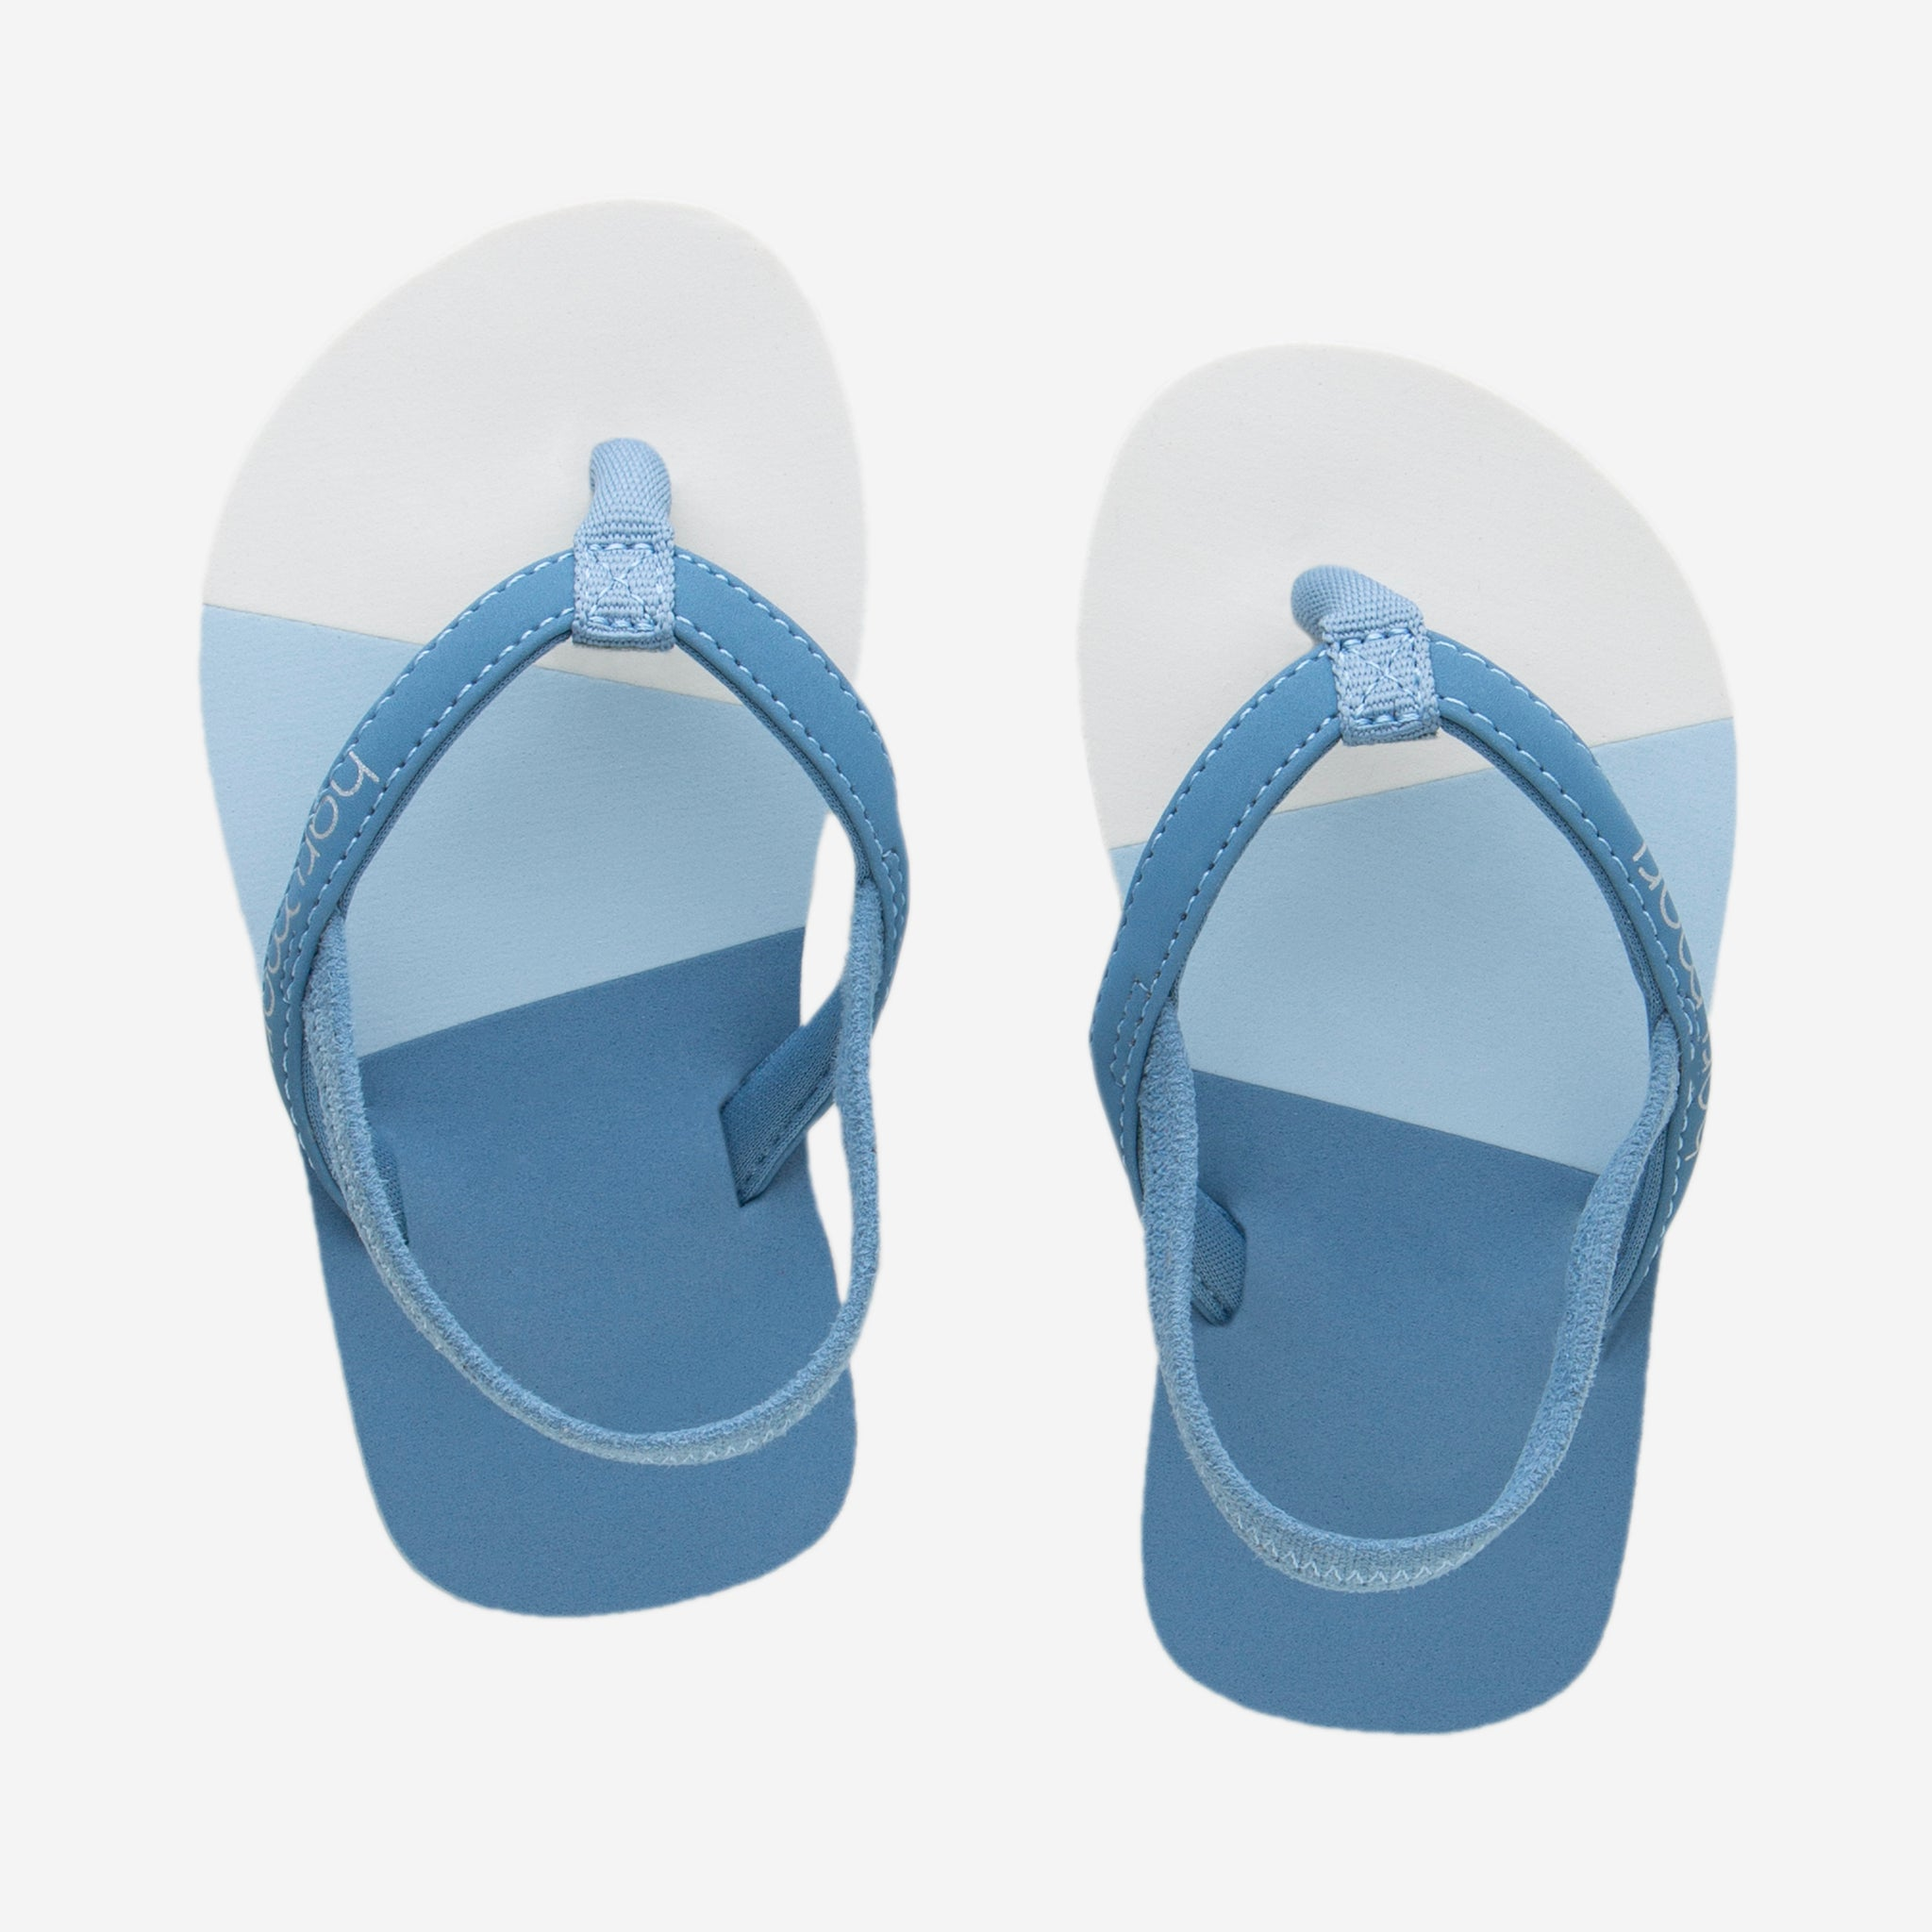 Hari Mari meadows asana kids flip flops in dusty blue/multi colors on white background